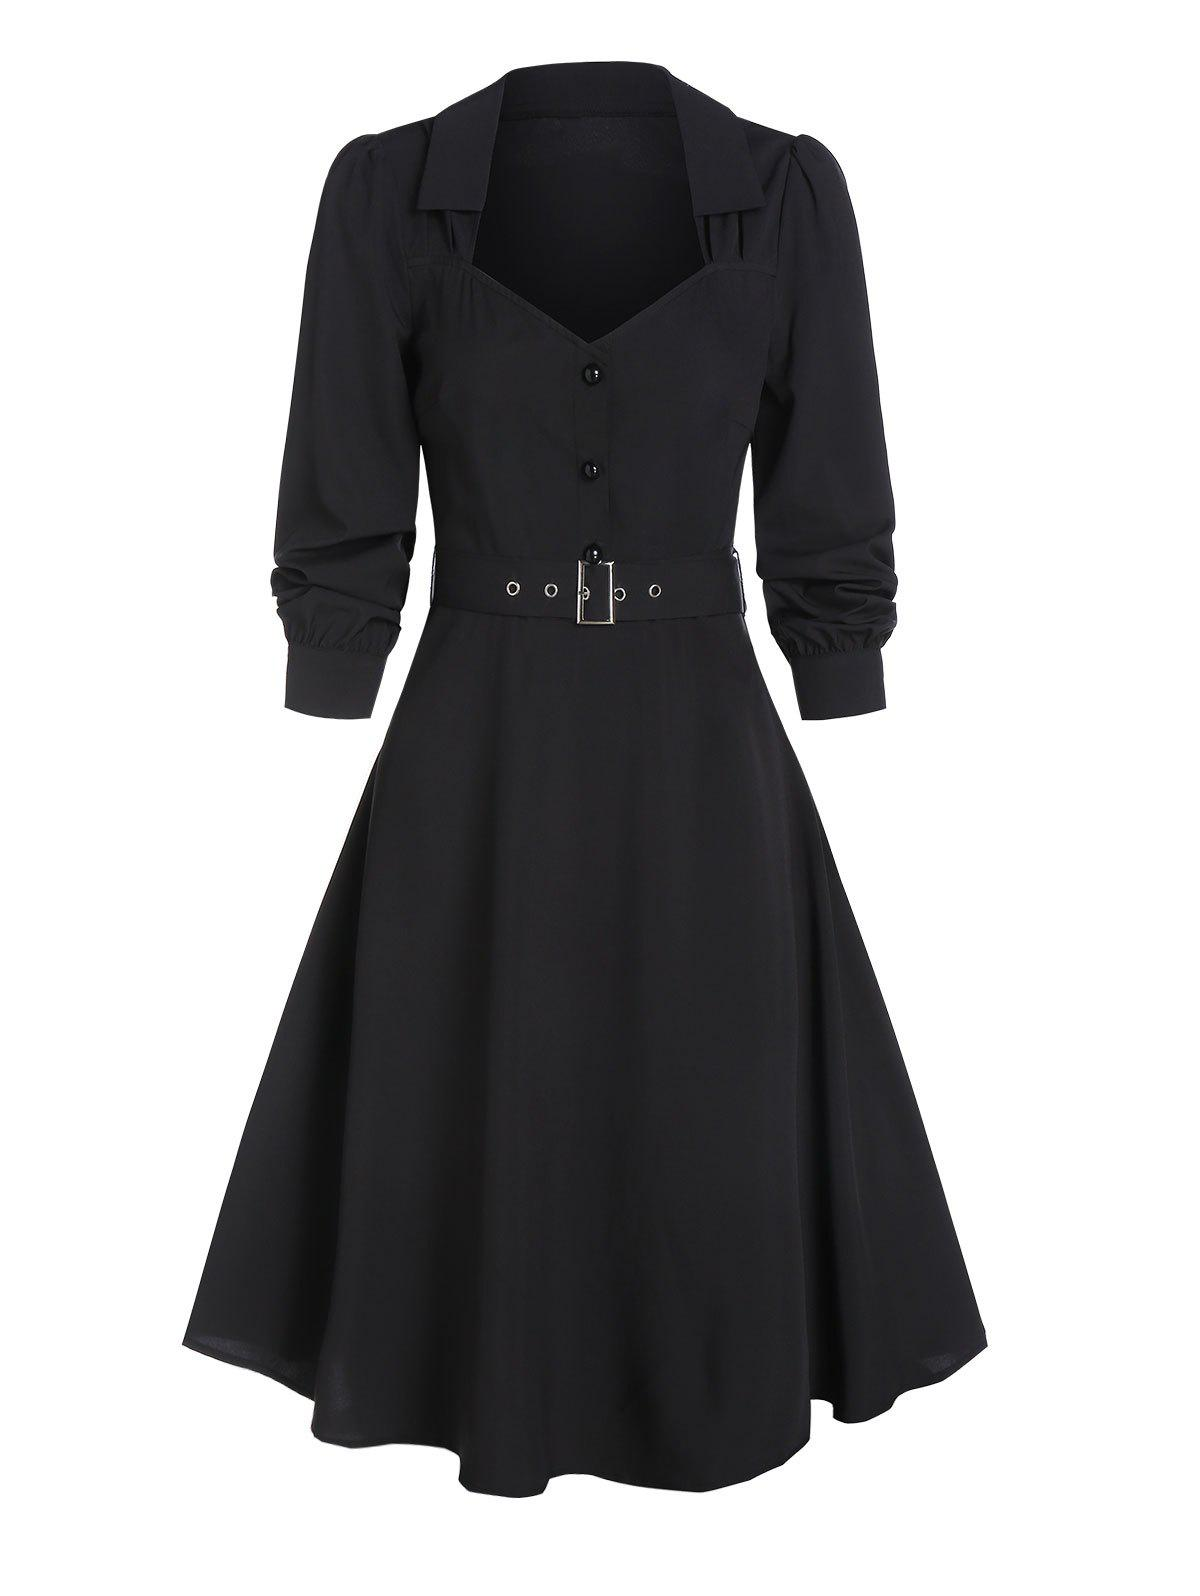 Fancy Half Button Vintage Belted Flare Dress